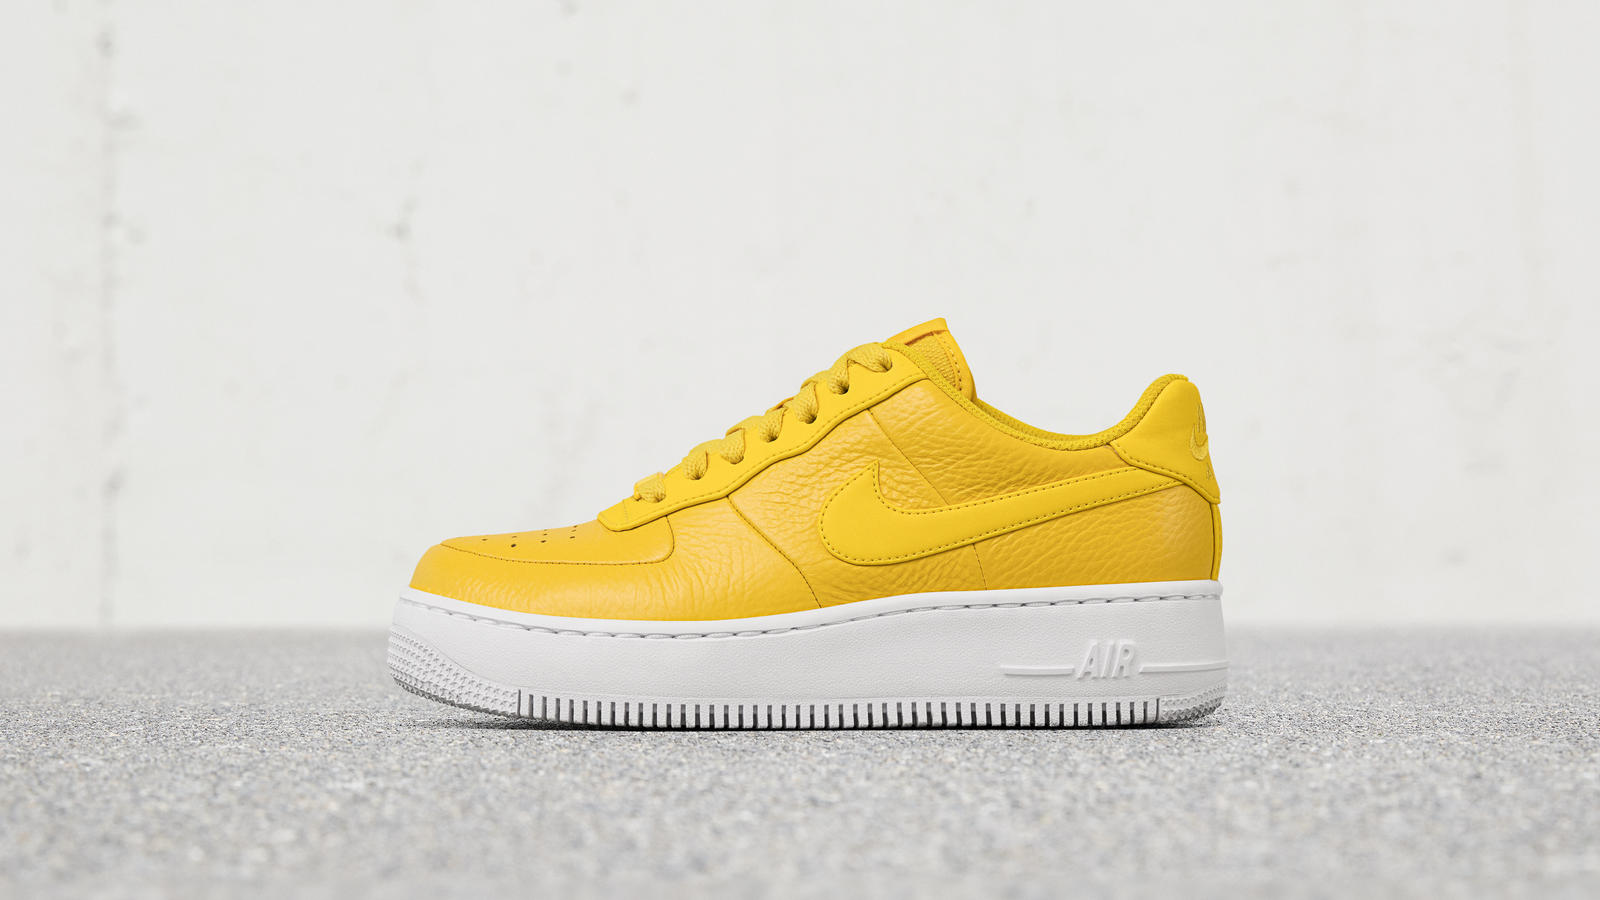 Nike Air Force 1 Upstep Premium Low